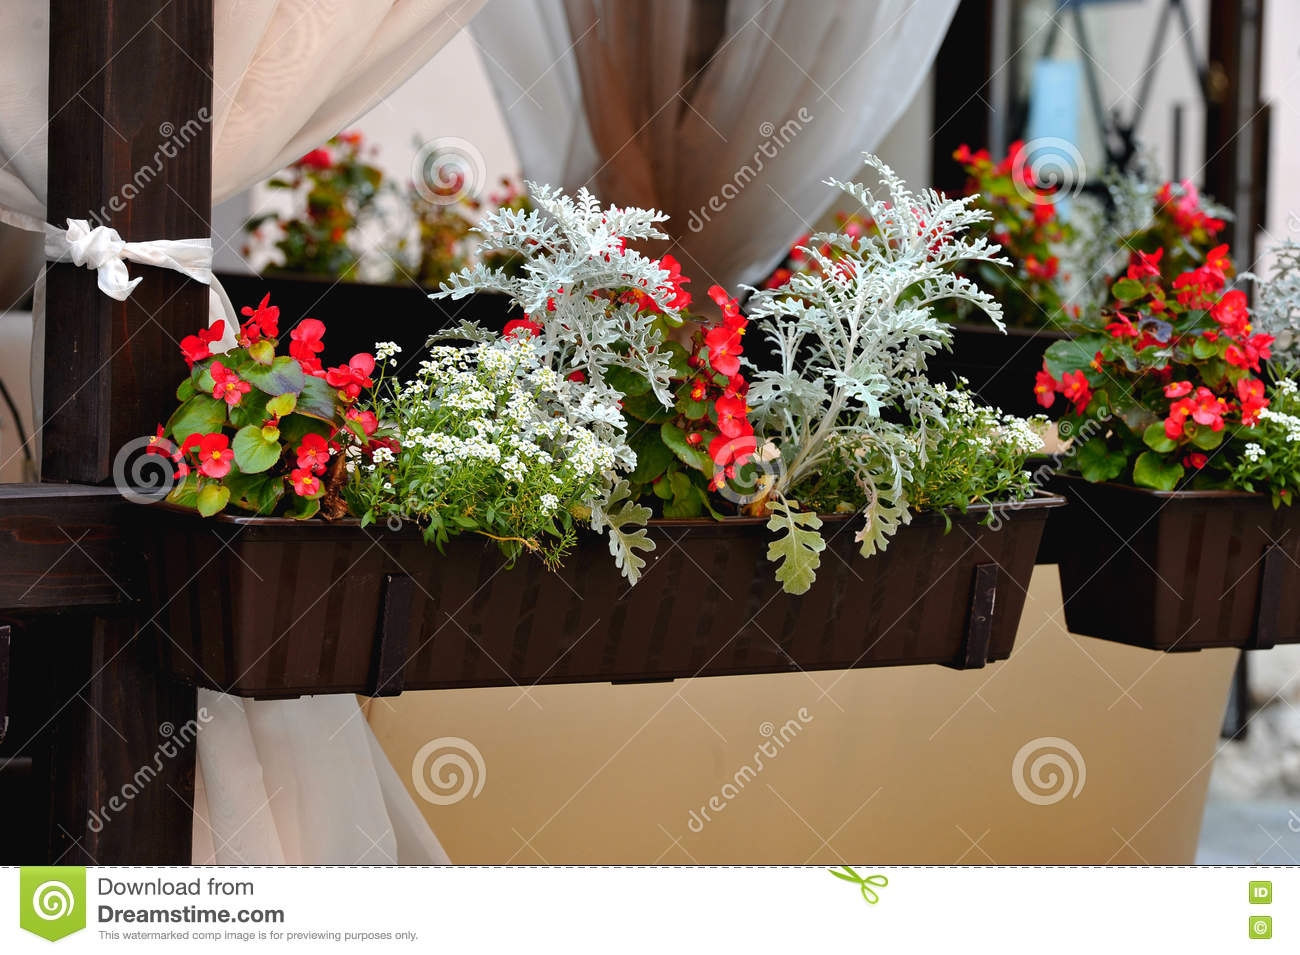 Potted Flowers Stock Image Image Of Beauty Flowers 82561133